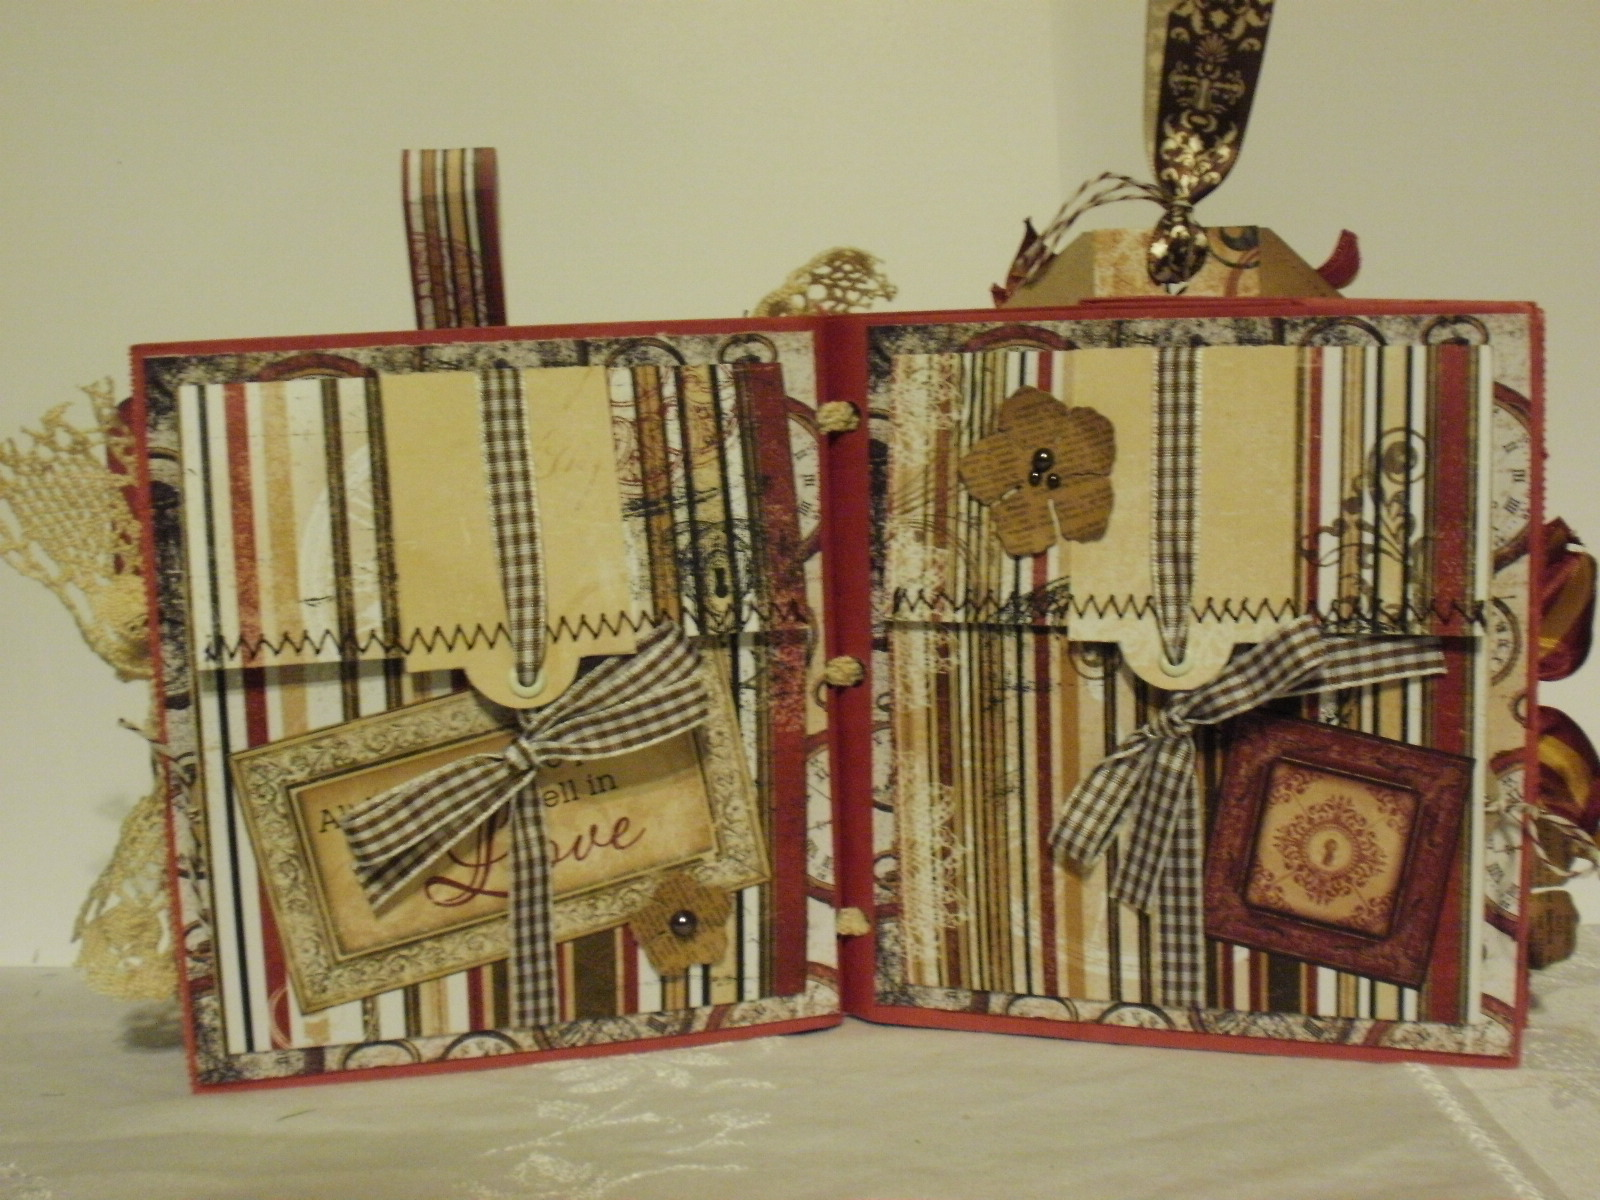 How to make scrapbook vintage - I Have Made This 6x6 Vintage Scrapbook Album A Family History Album Using Bo Bunnys Timepiece Papers Thought I Could Make It A Bit Different Then Some Of